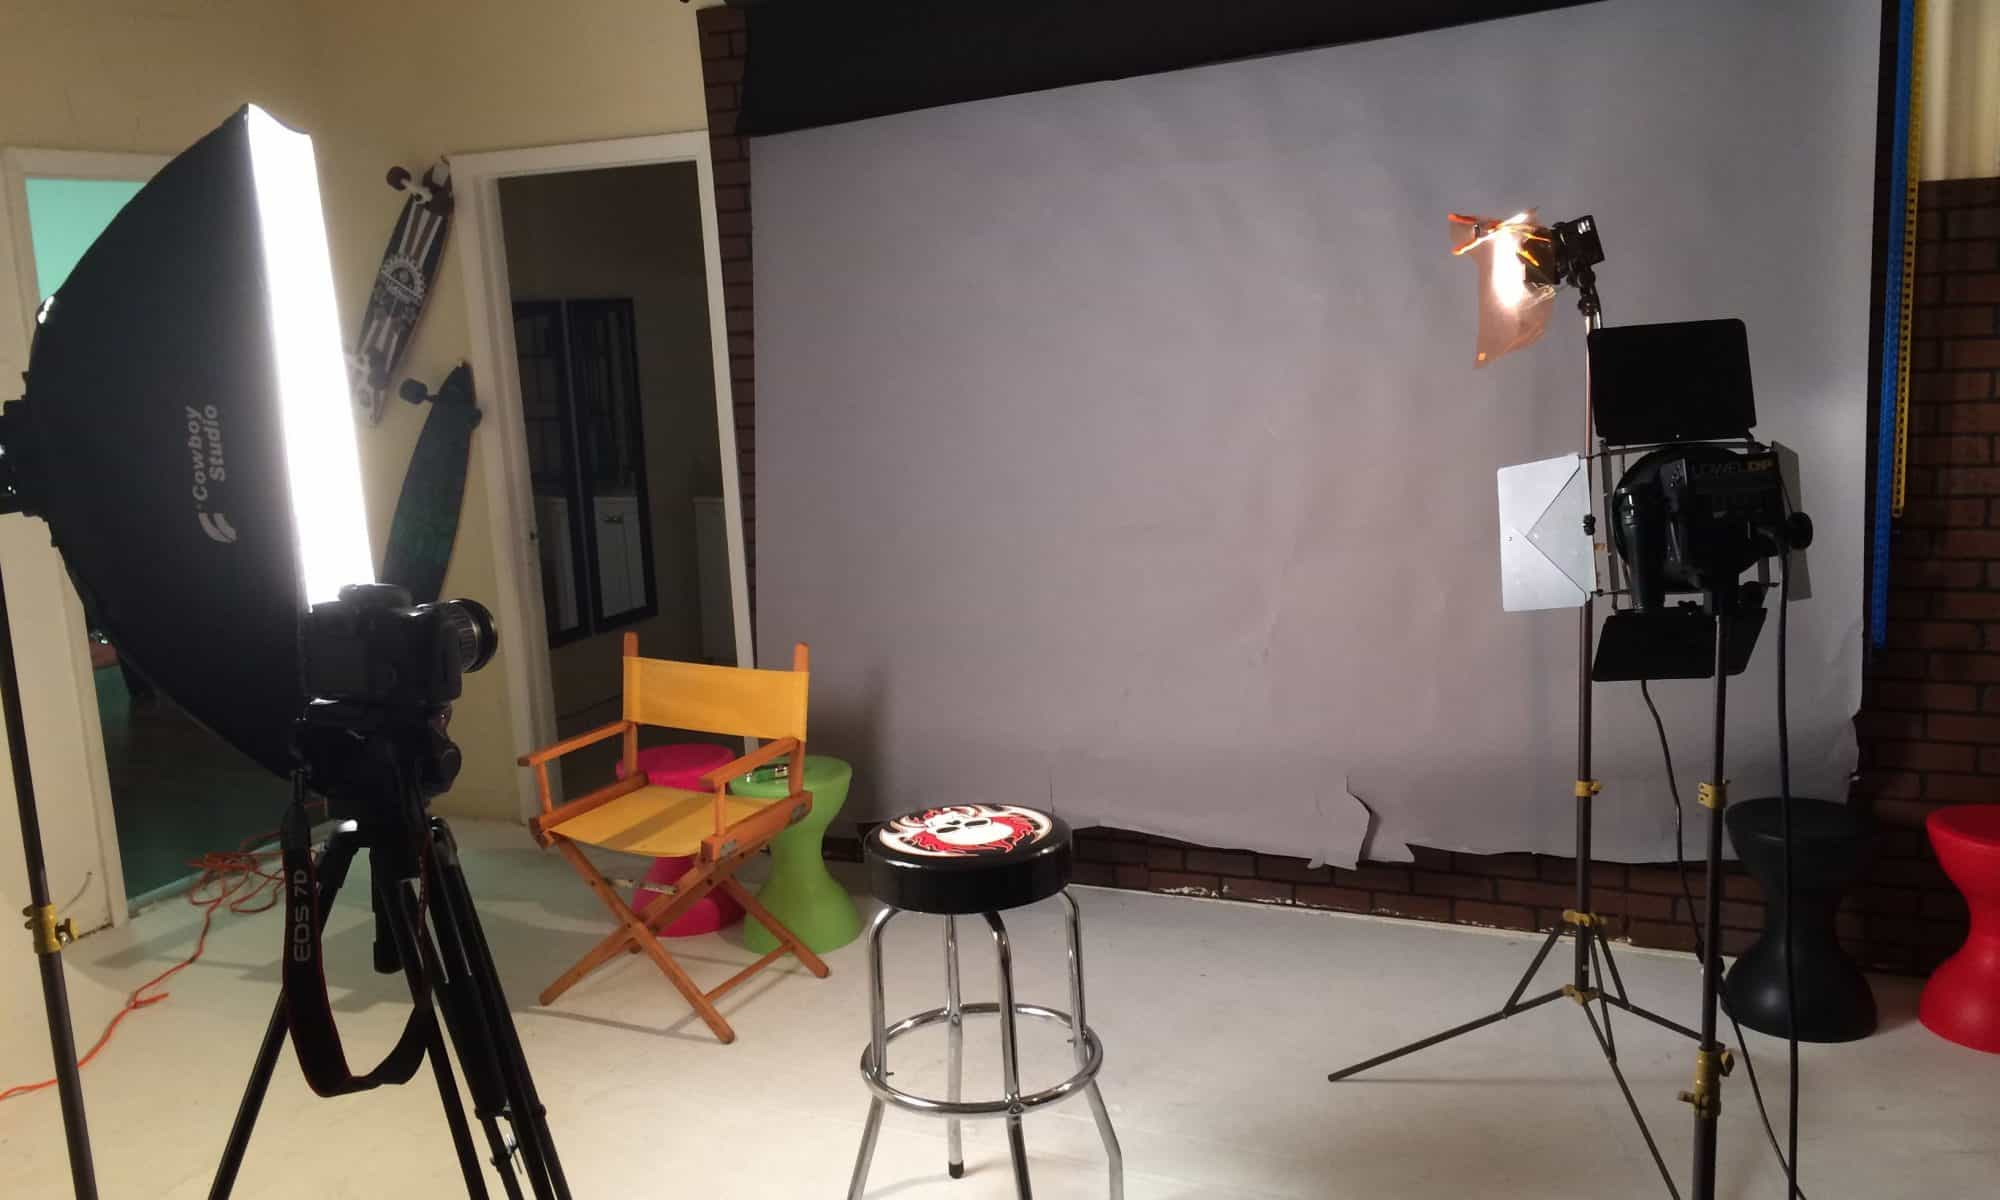 studio setup for shoot